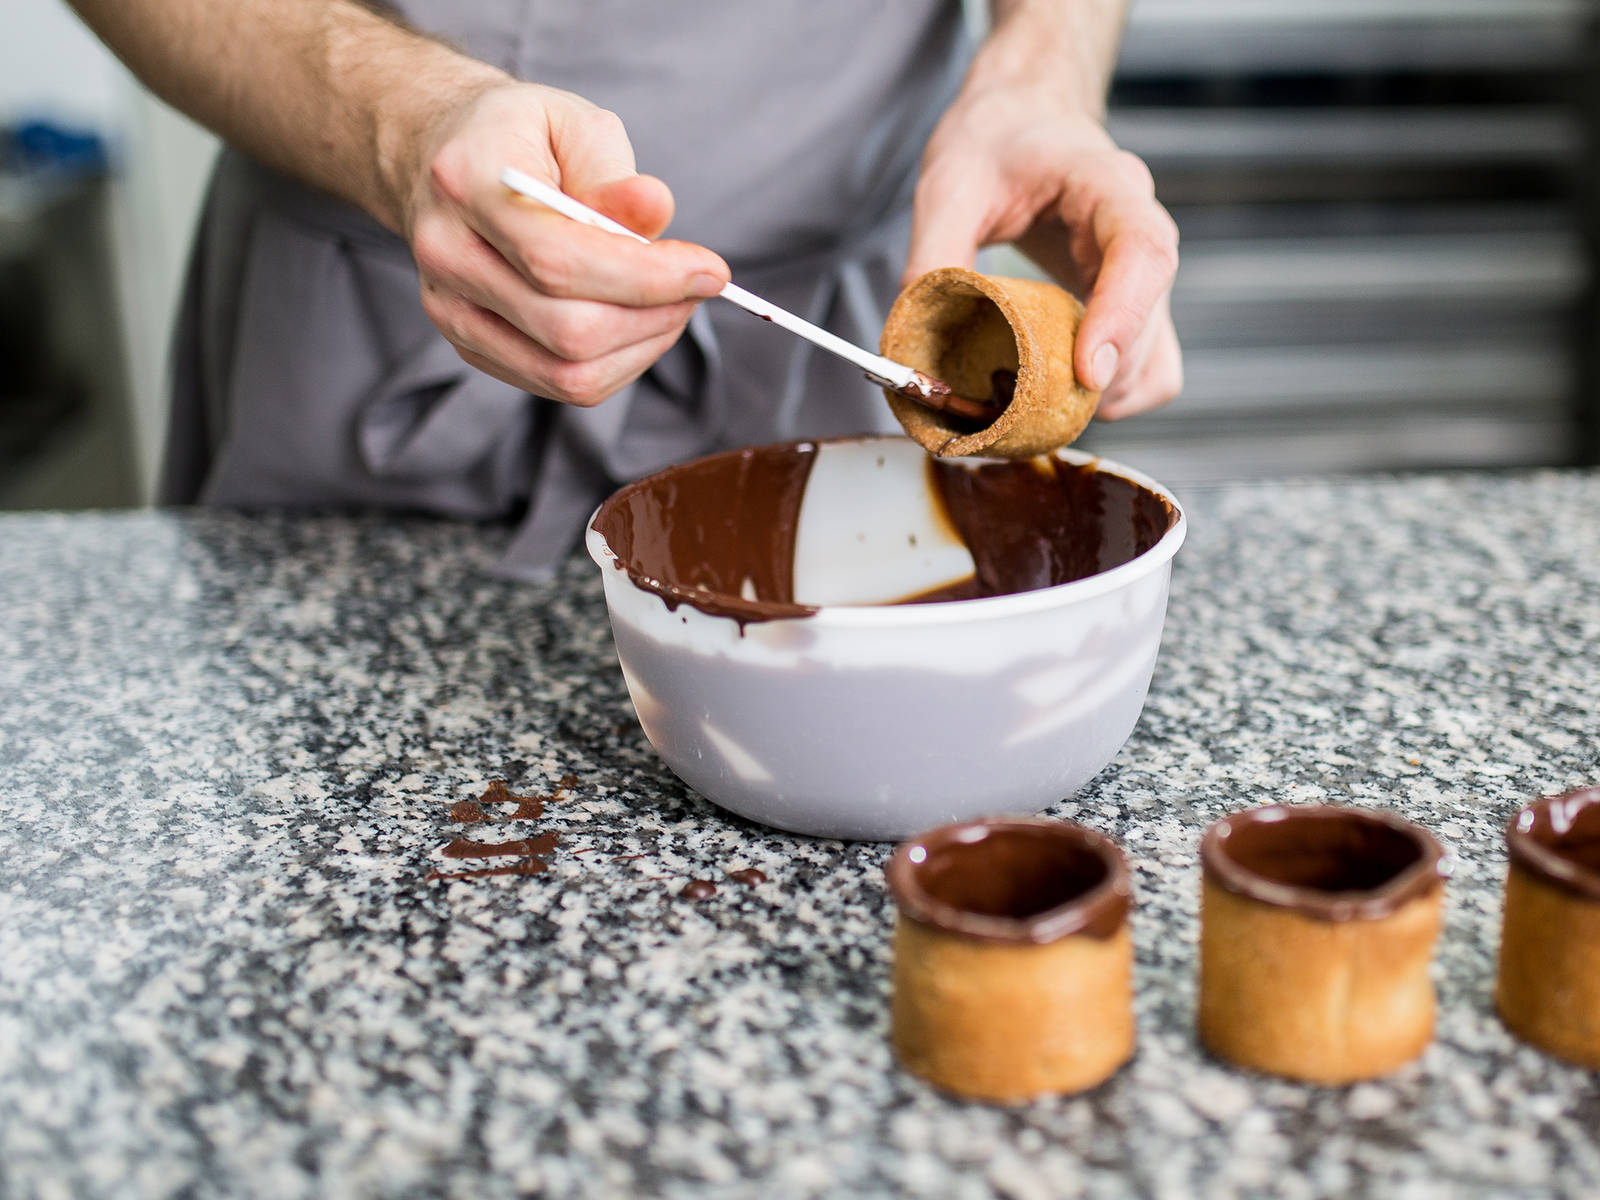 Once the mixture has reached 32°C/90°F, start to glaze the cookie cups with a pastry brush. To make sure the inside of the cups are leak-proof, apply two layers of the chocolate to the insides of the cup. To form the rim, dip the cup into the chocolate and let the excess drip off. If you like, garnish the cups with chocolate sprinkles, chopped almonds, or once the chocolate has dried, with edible gold dust. Transfer cookie cups to refrigerator to chill for approx. 20 min.